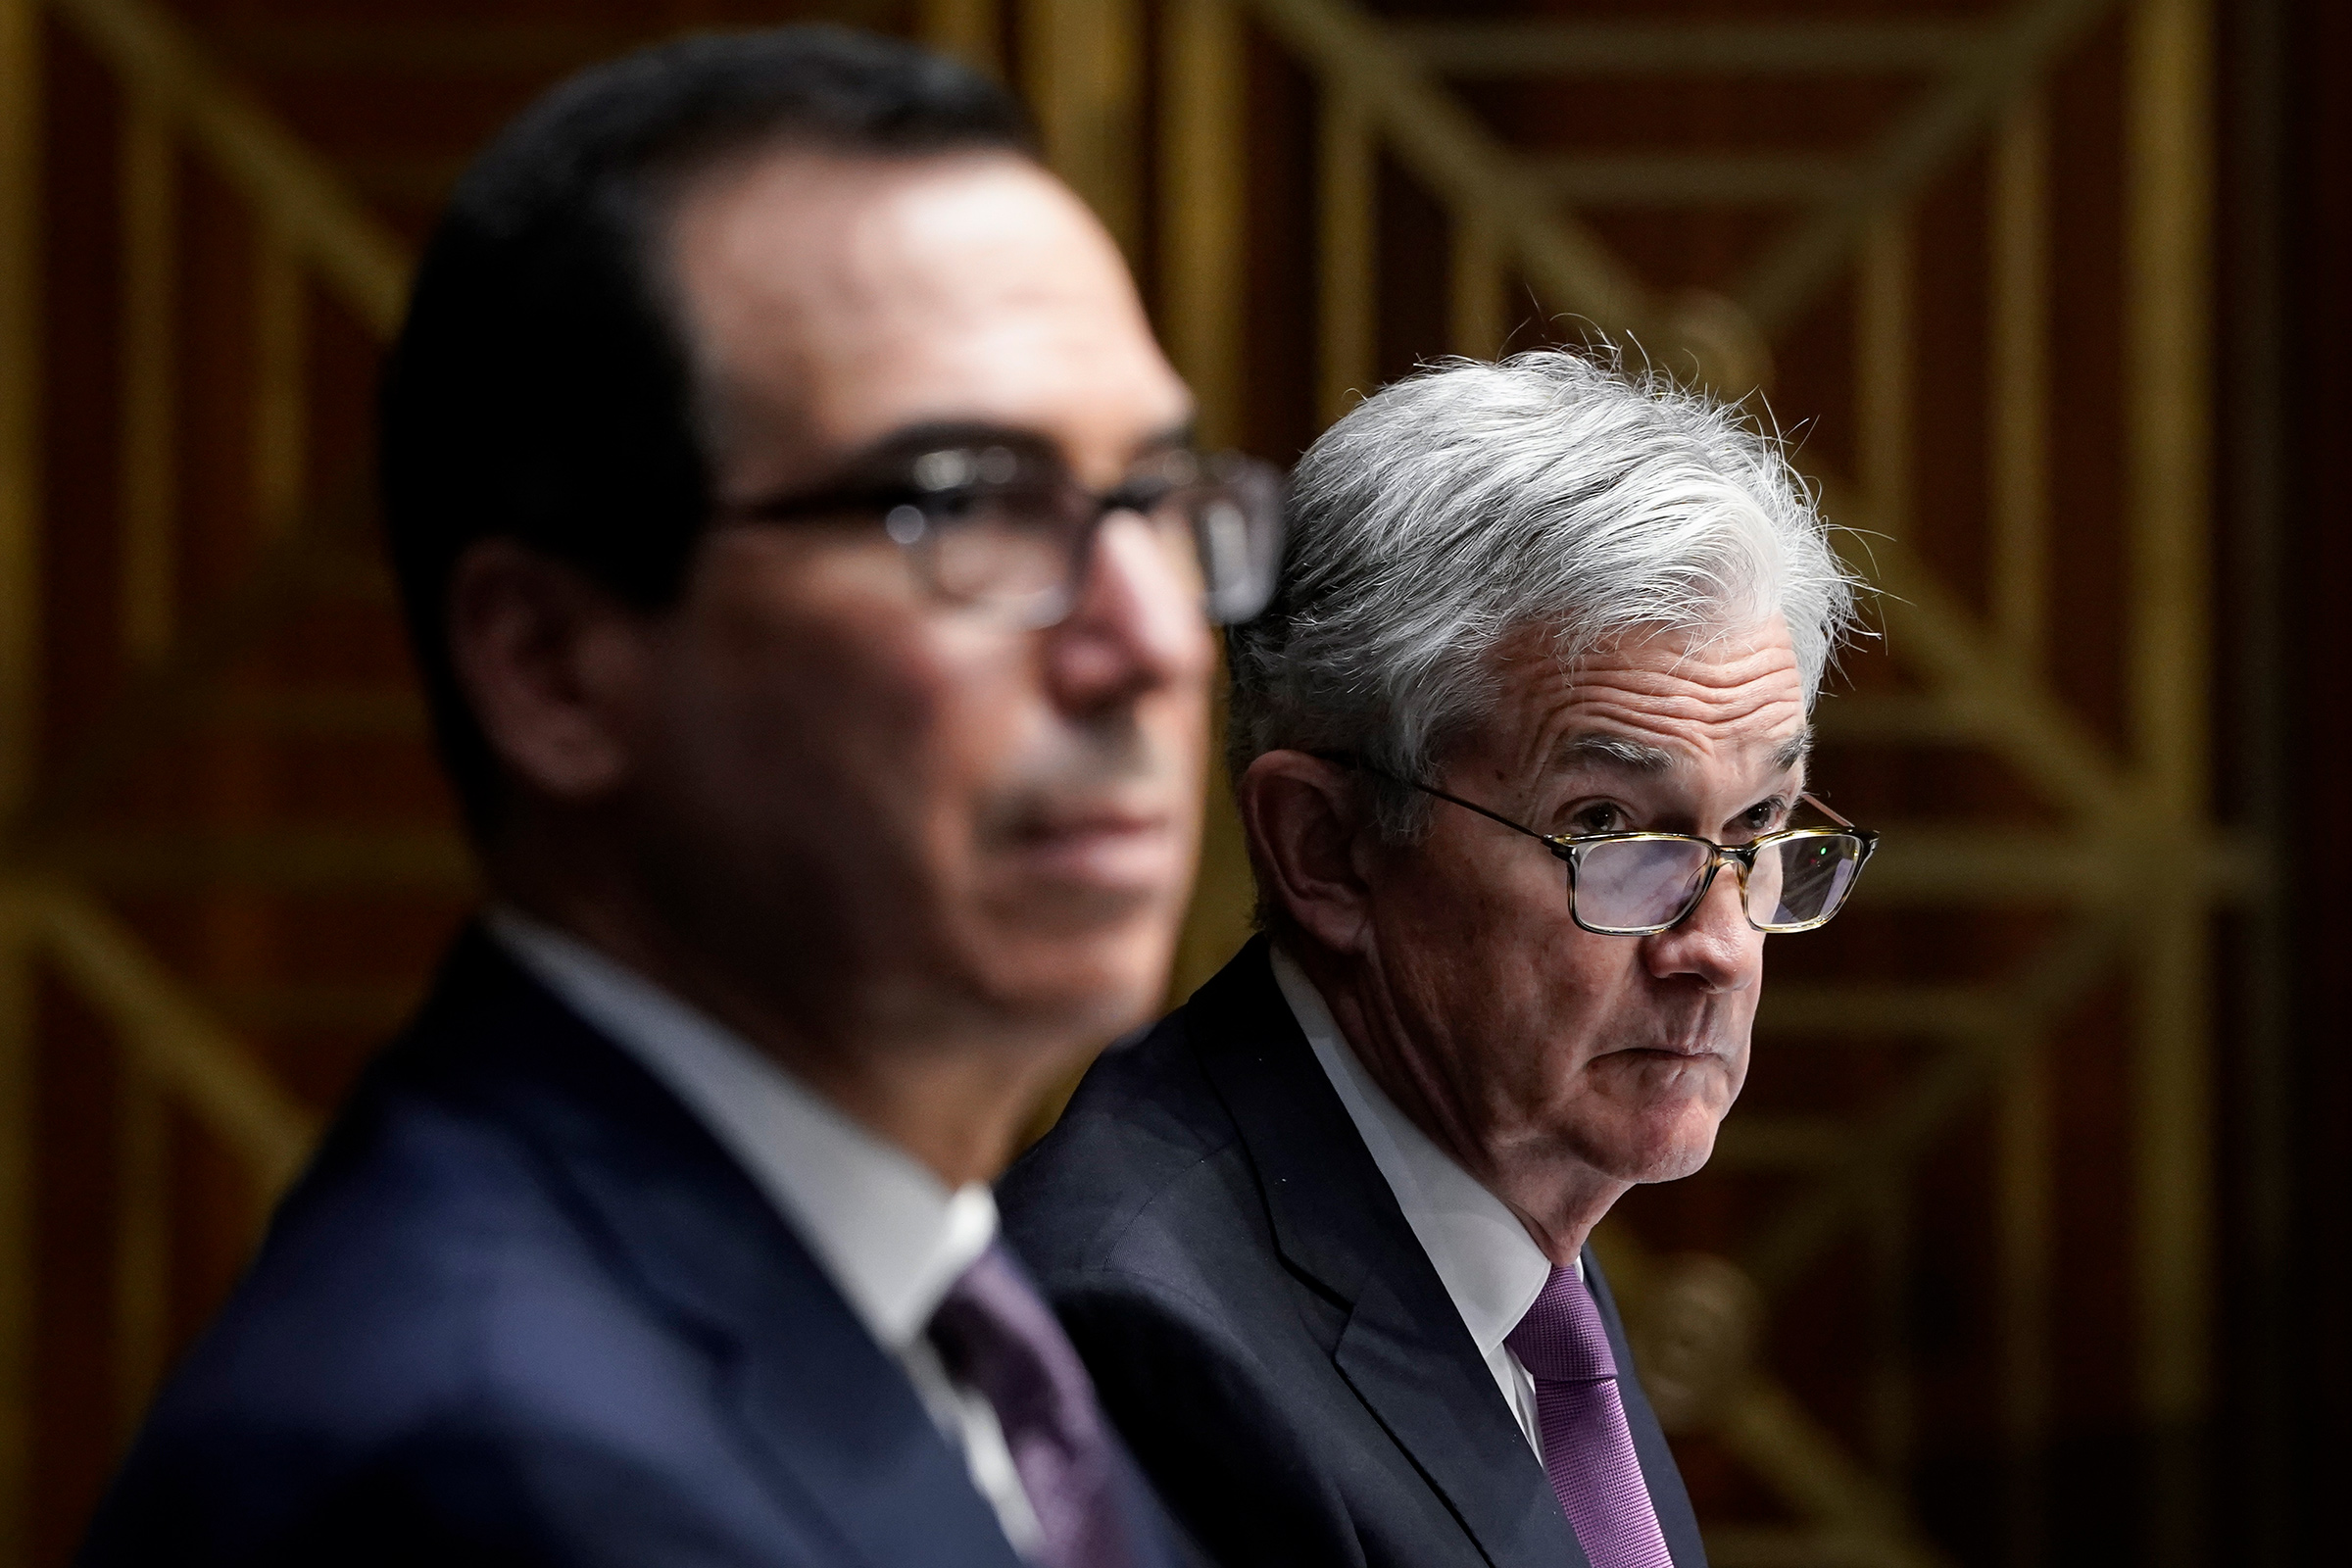 Treasury Secretary Steven Mnuchin and Federal Reserve Board Chairman Jerome Powell testify during a Senate Banking Committee hearing on Capitol Hill on Sept. 24